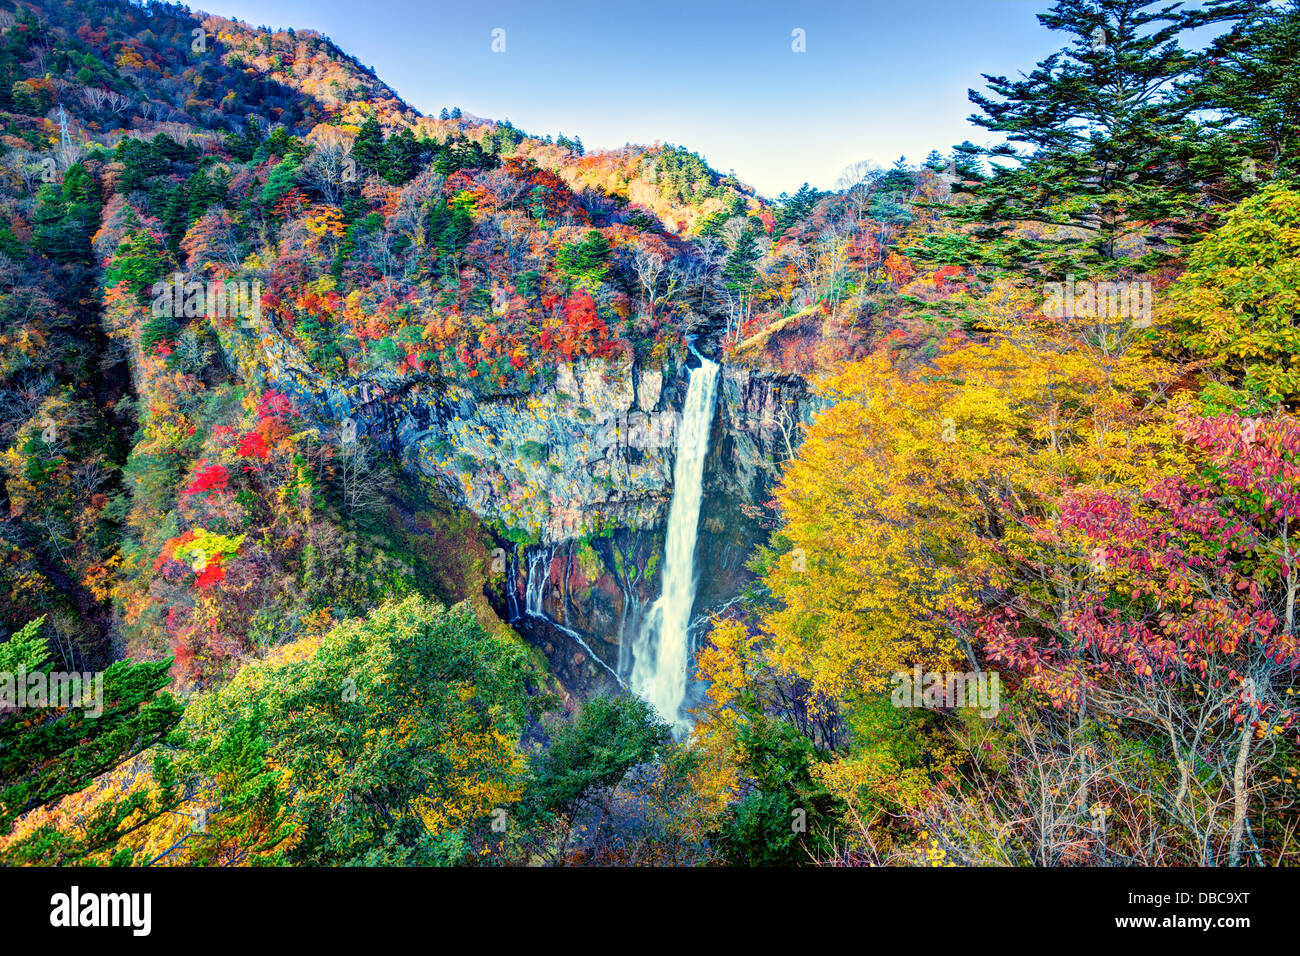 Kegon Falls in Nikko, Japan. - Stock Image